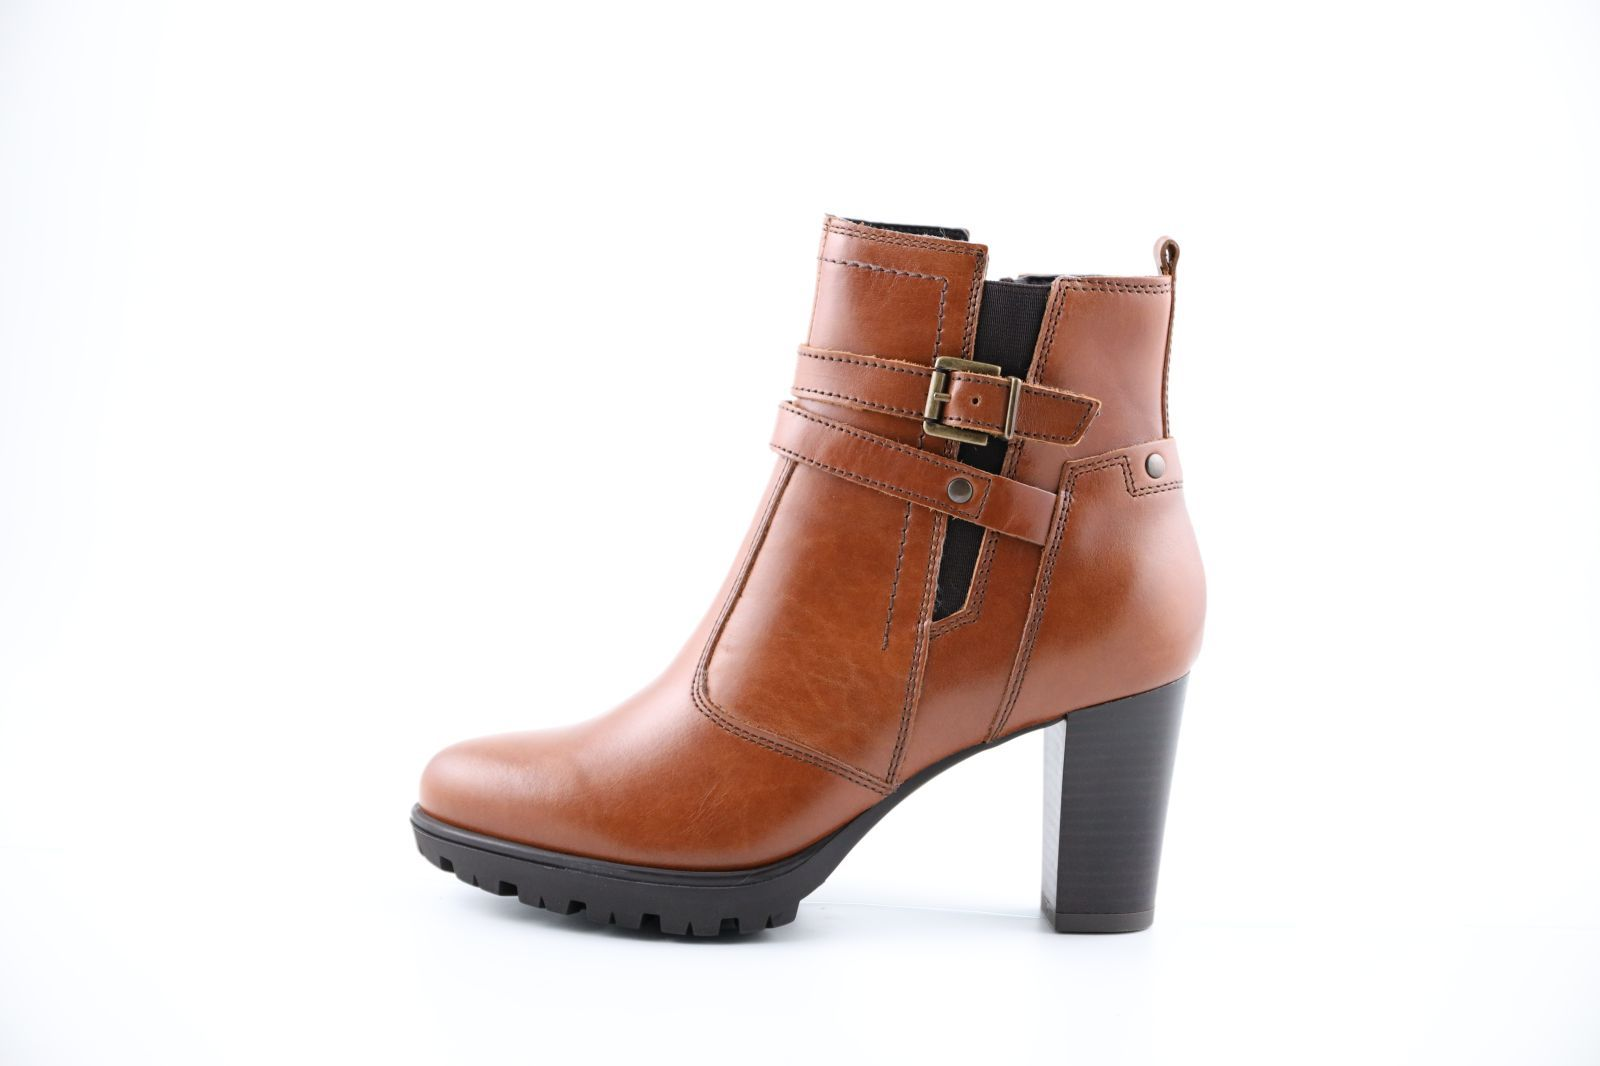 Hush Puppies Bottillon Camel dames (Bamkin - BAMKIN) - Marques à Suivre